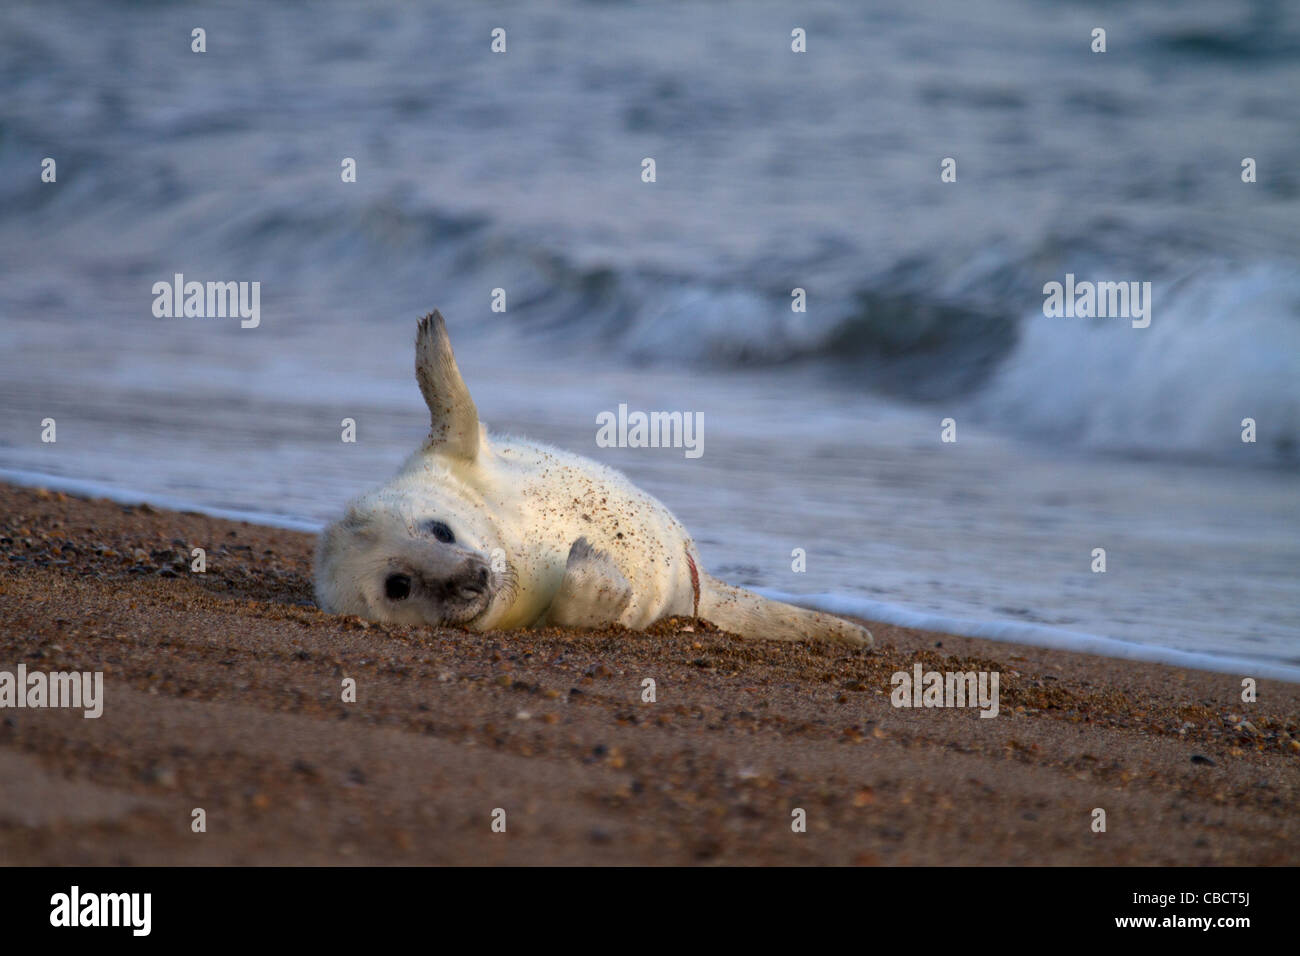 A young Grey Seal pup, Halichoerus grypus plays on the edge of the surf - Stock Image